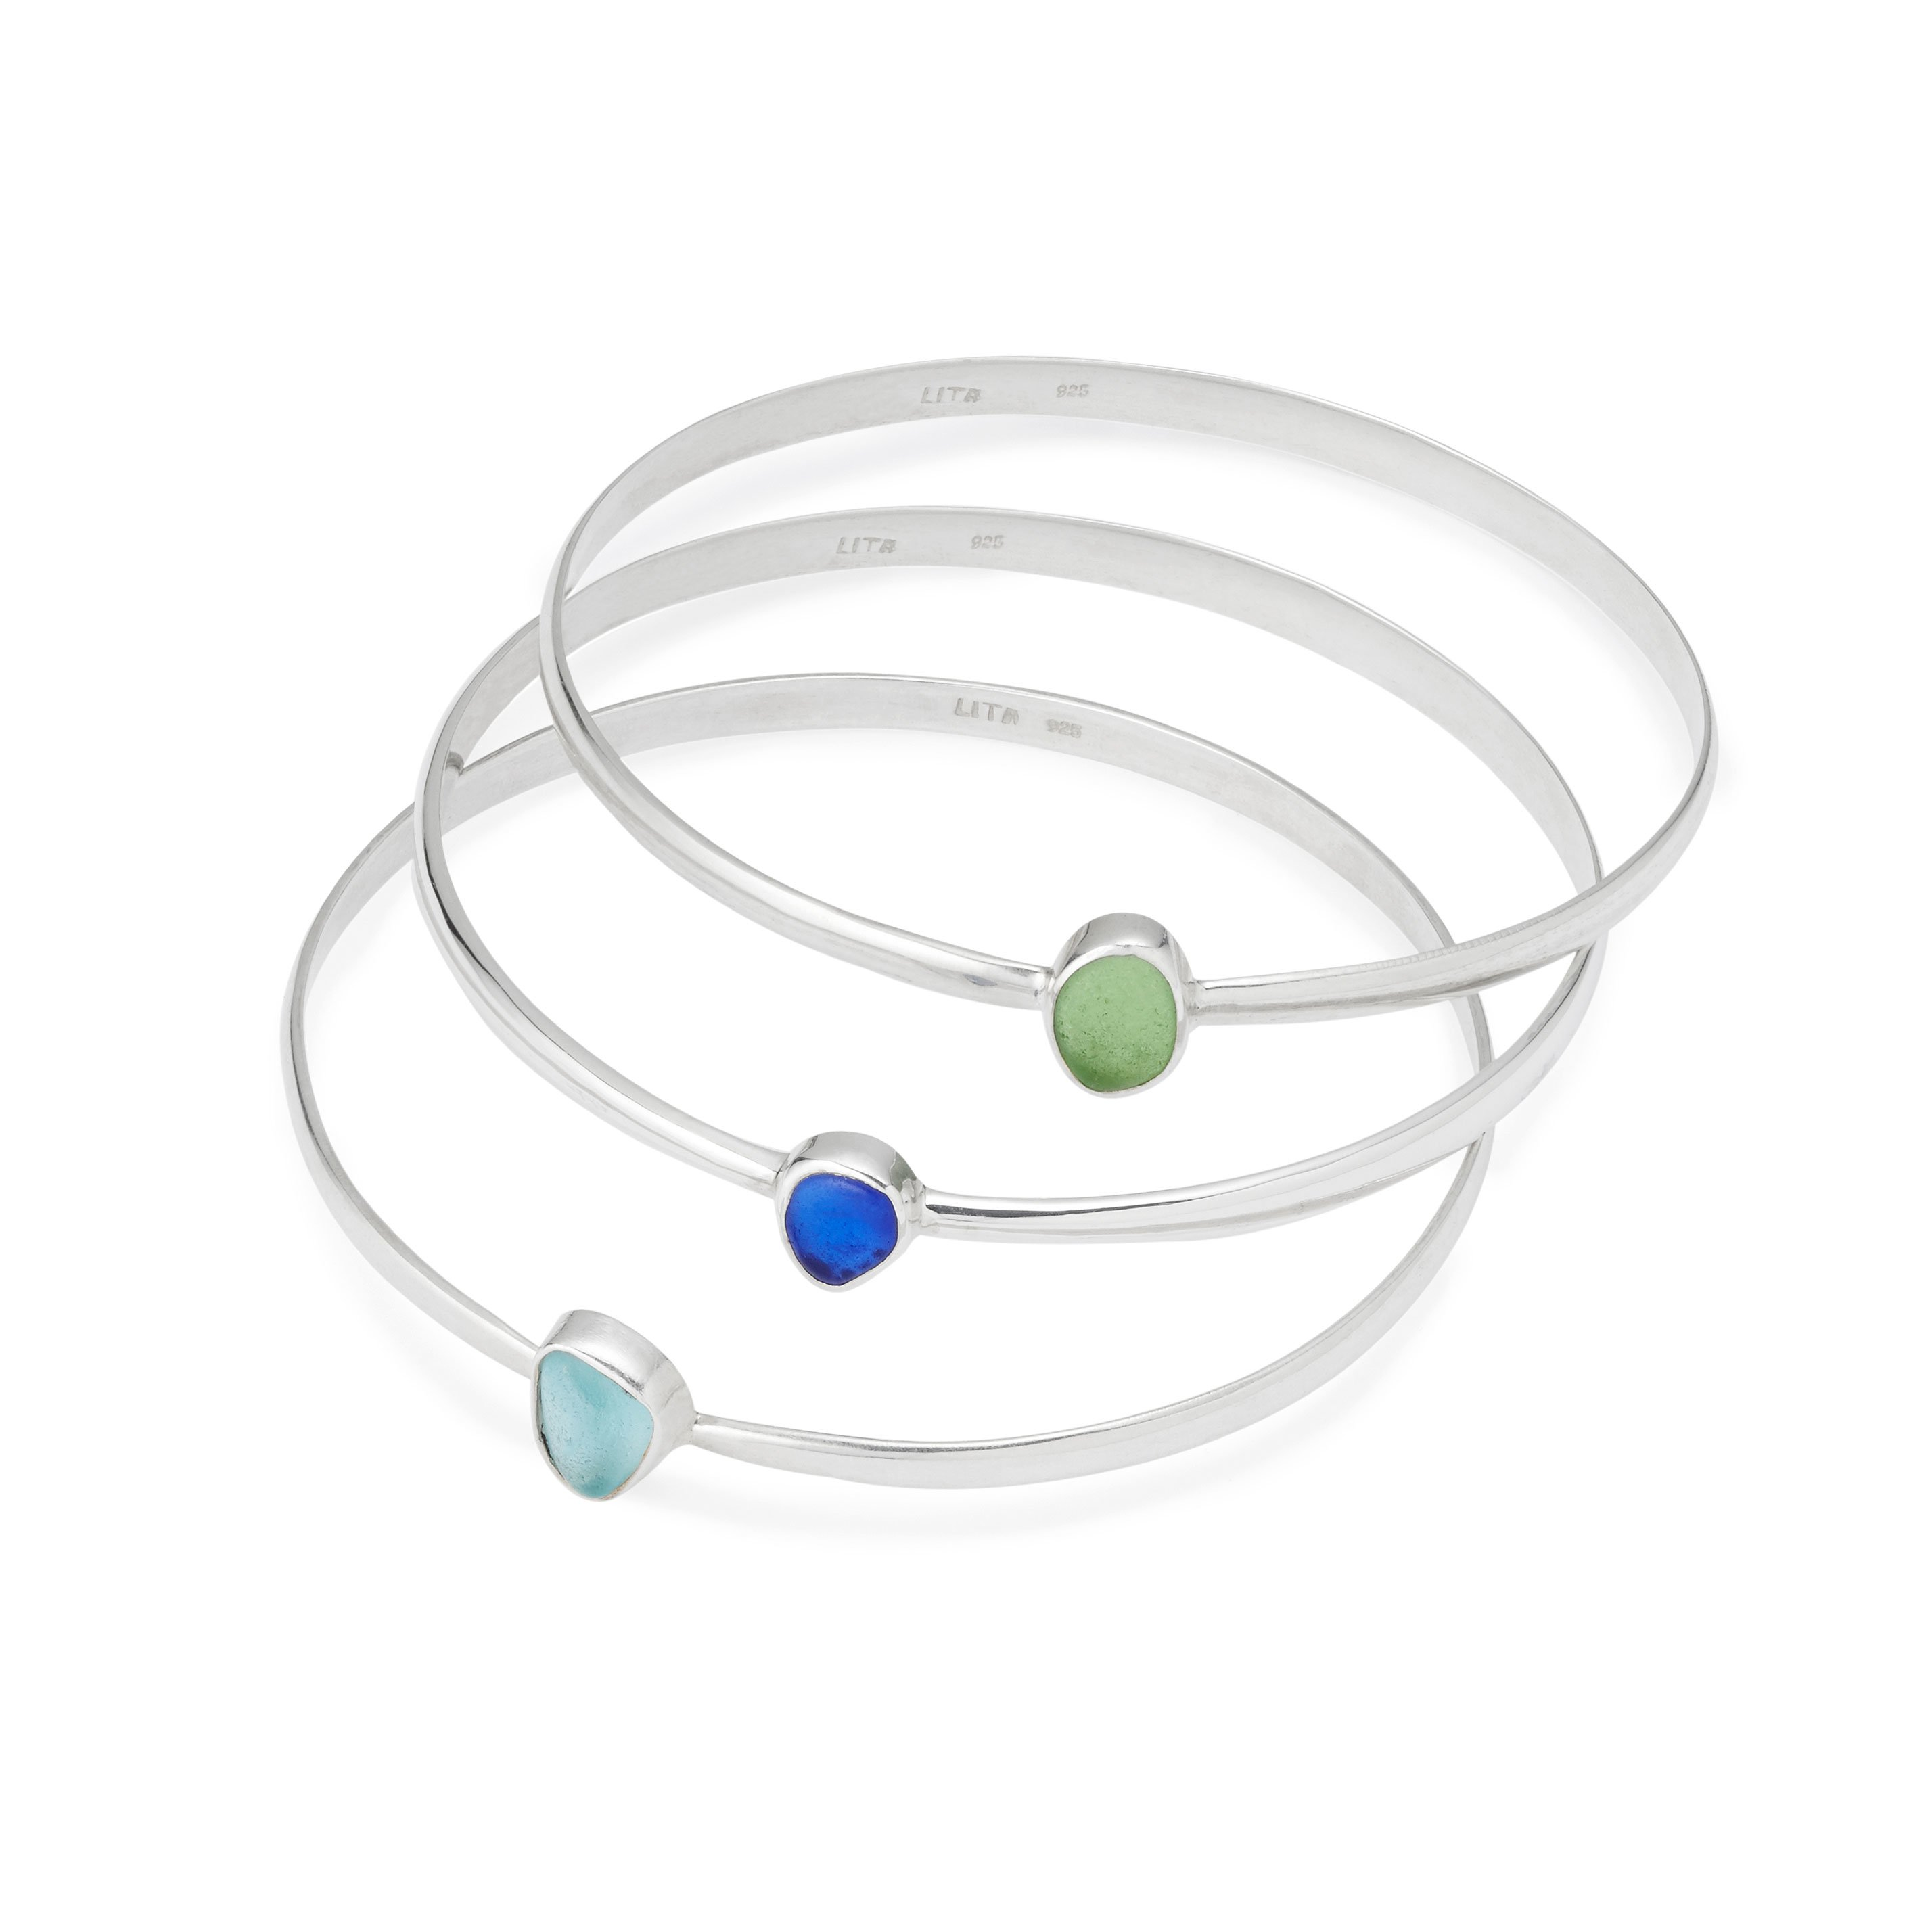 br am categories bracelets with bangle always i james what avery bangles a you zoom bracelet is